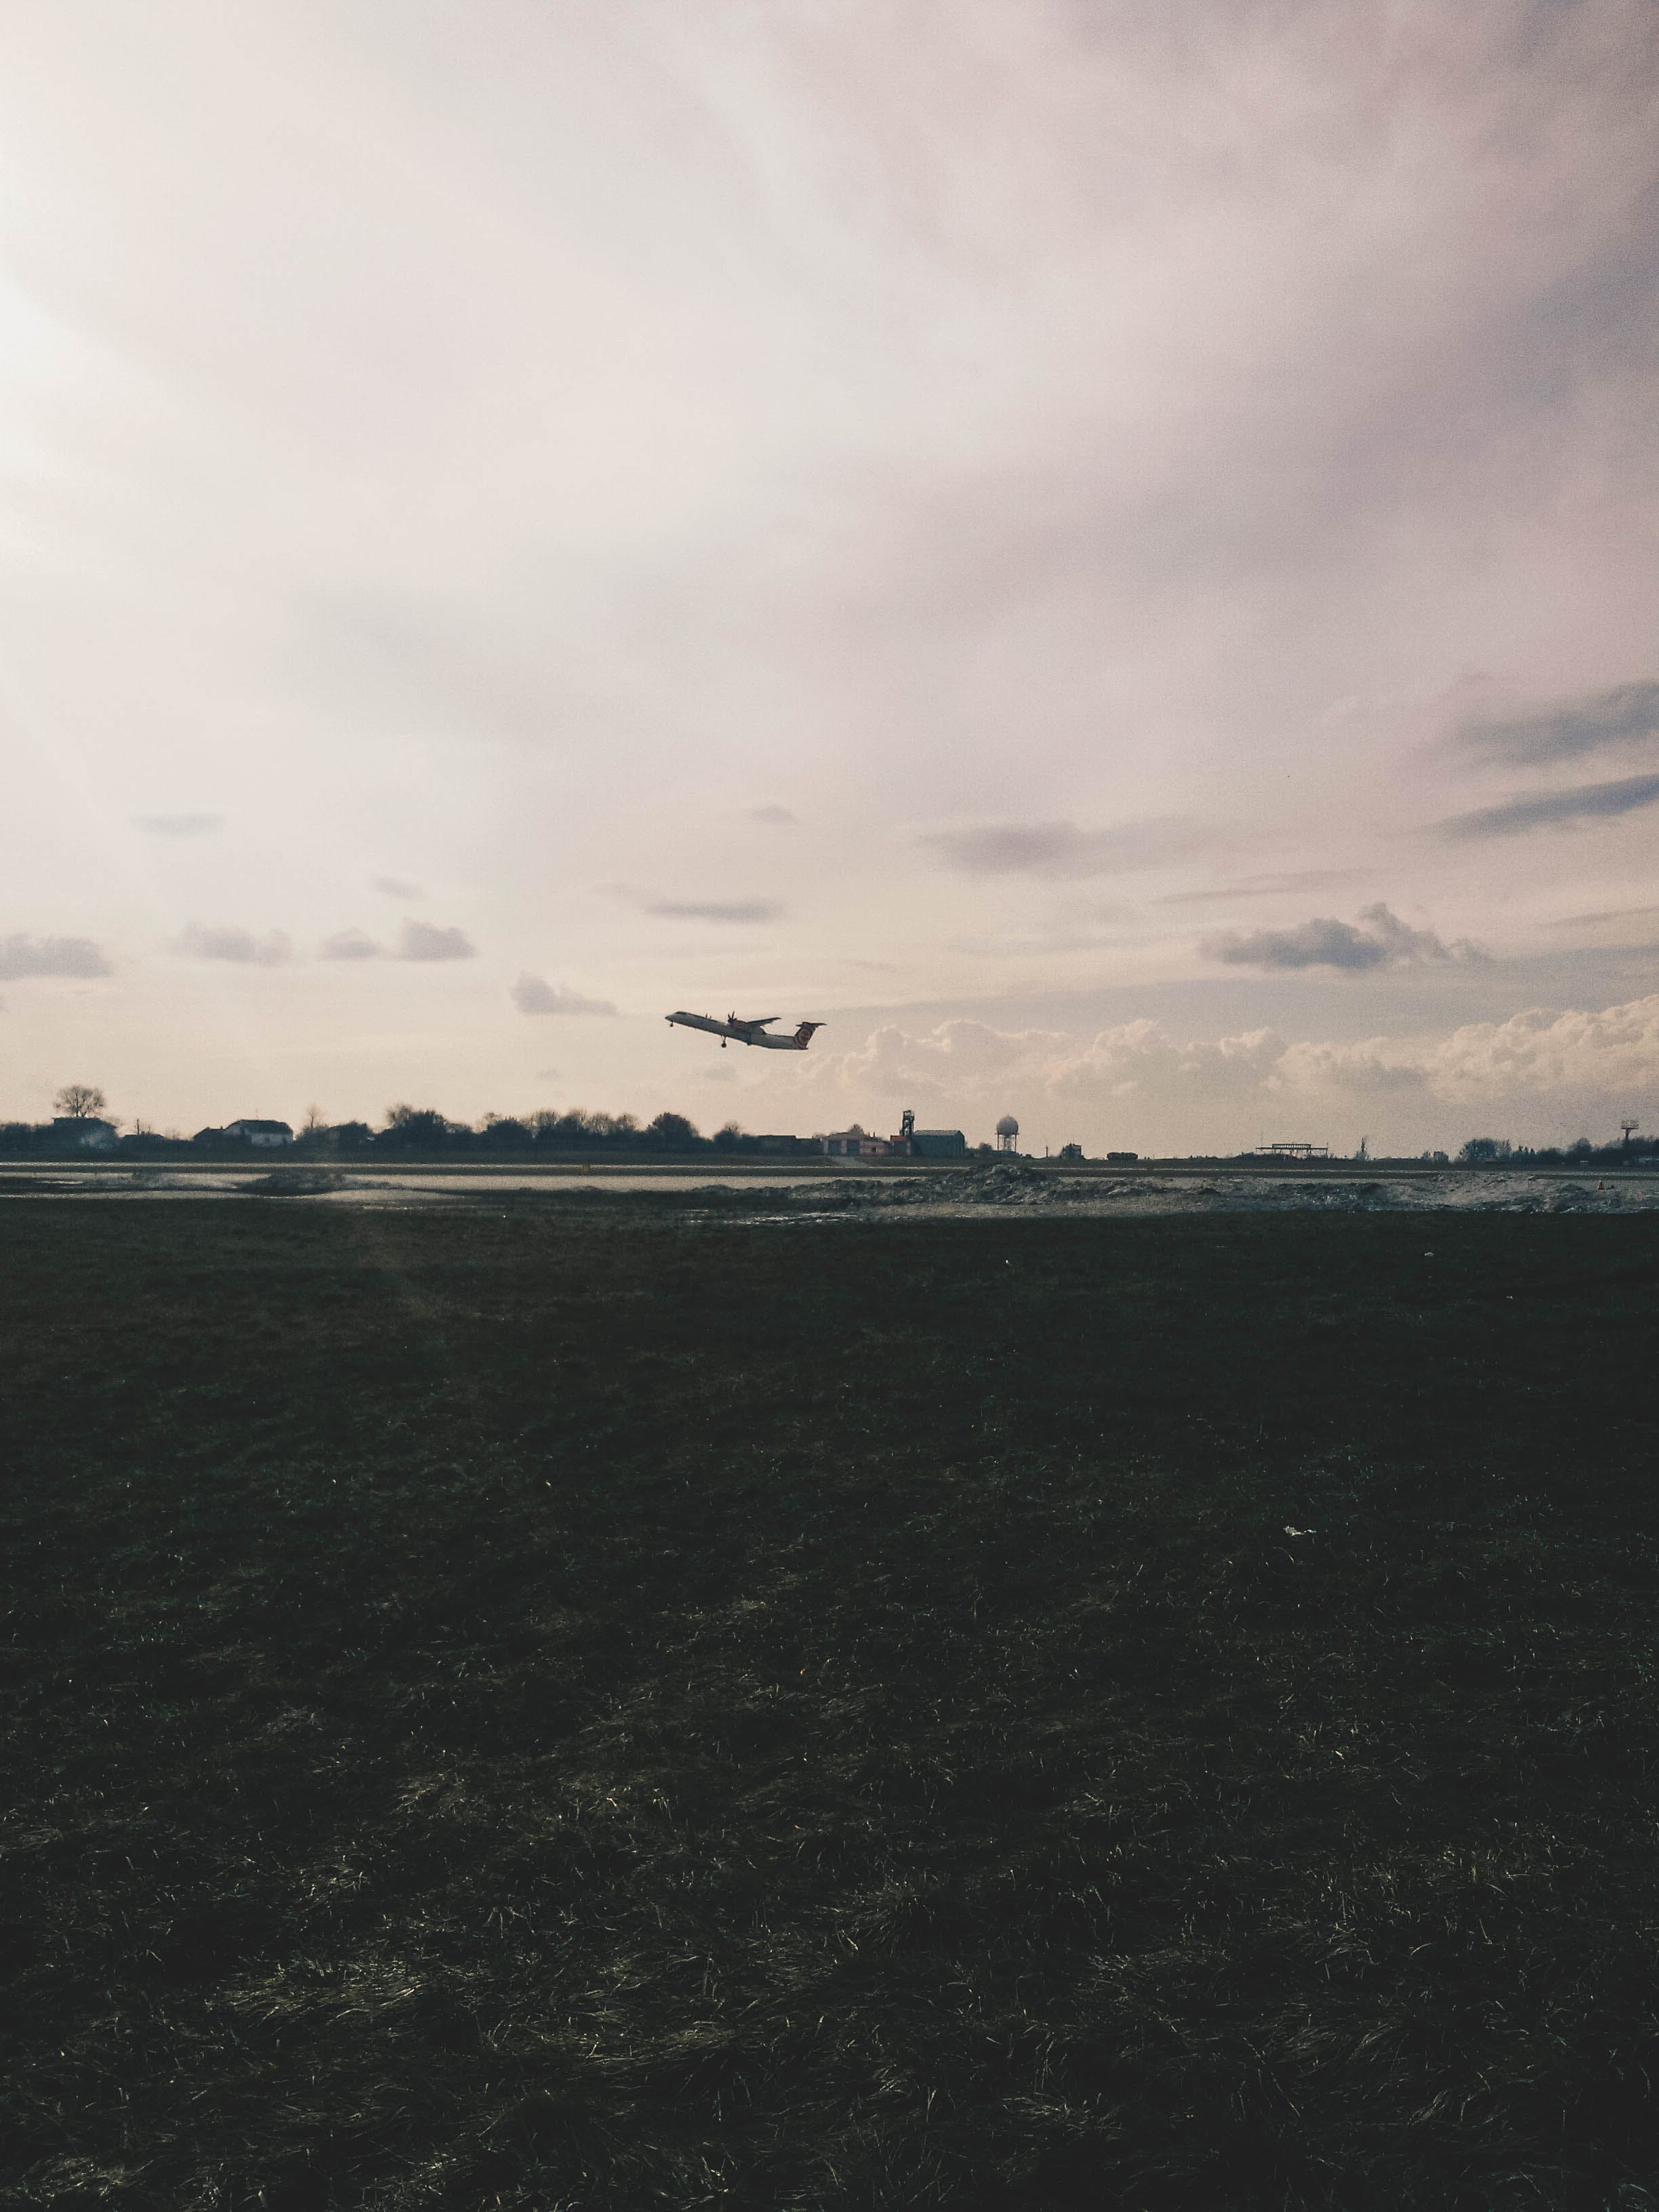 Free stock photo of airplane, airport, freedom, grass